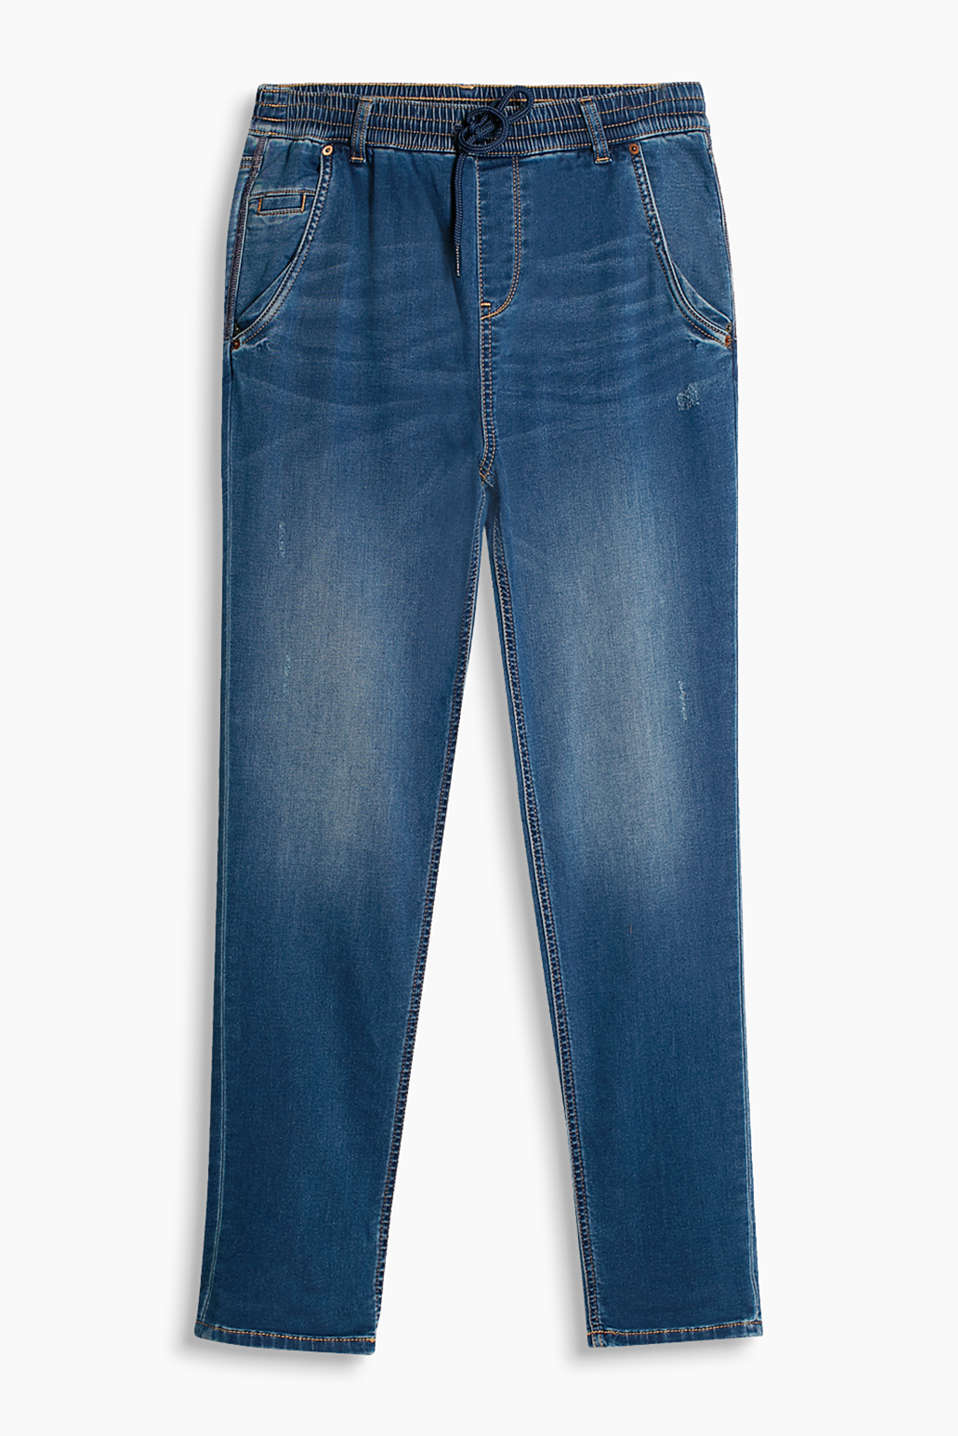 Soft and lightweight, cool boyfriend-style jeans with an elasticated waistband and vintage finish